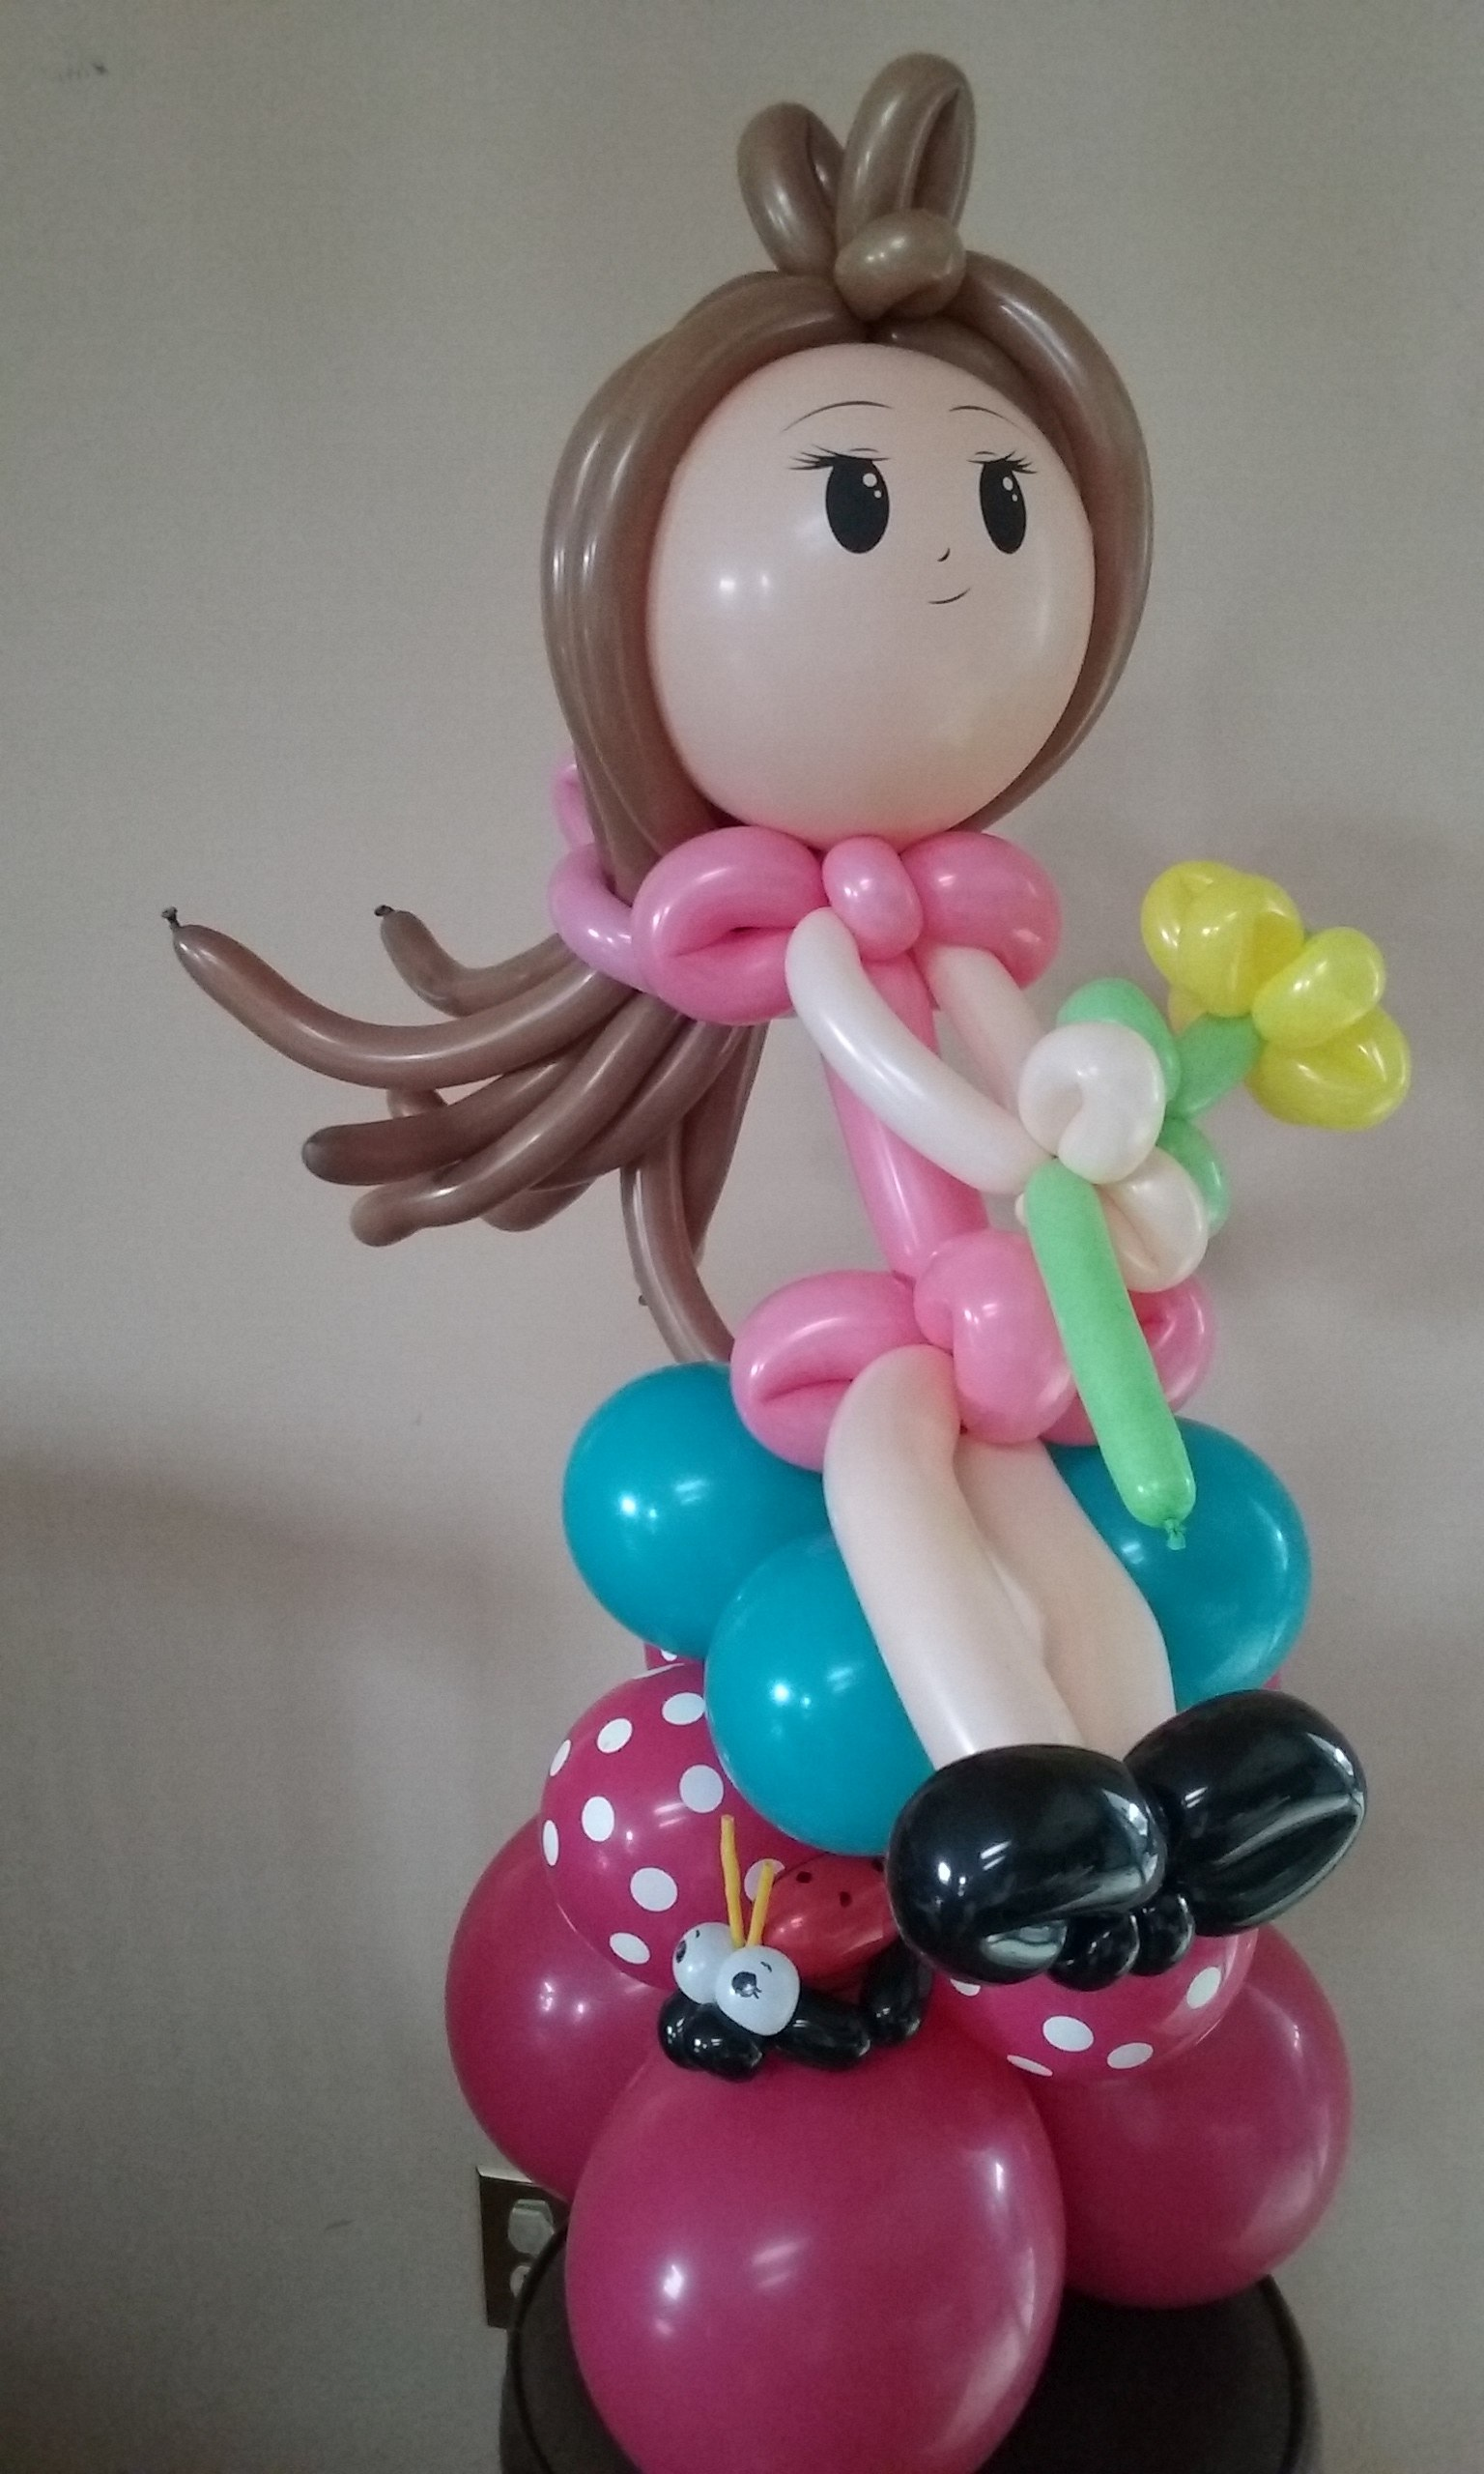 Cool balloon picture 99018